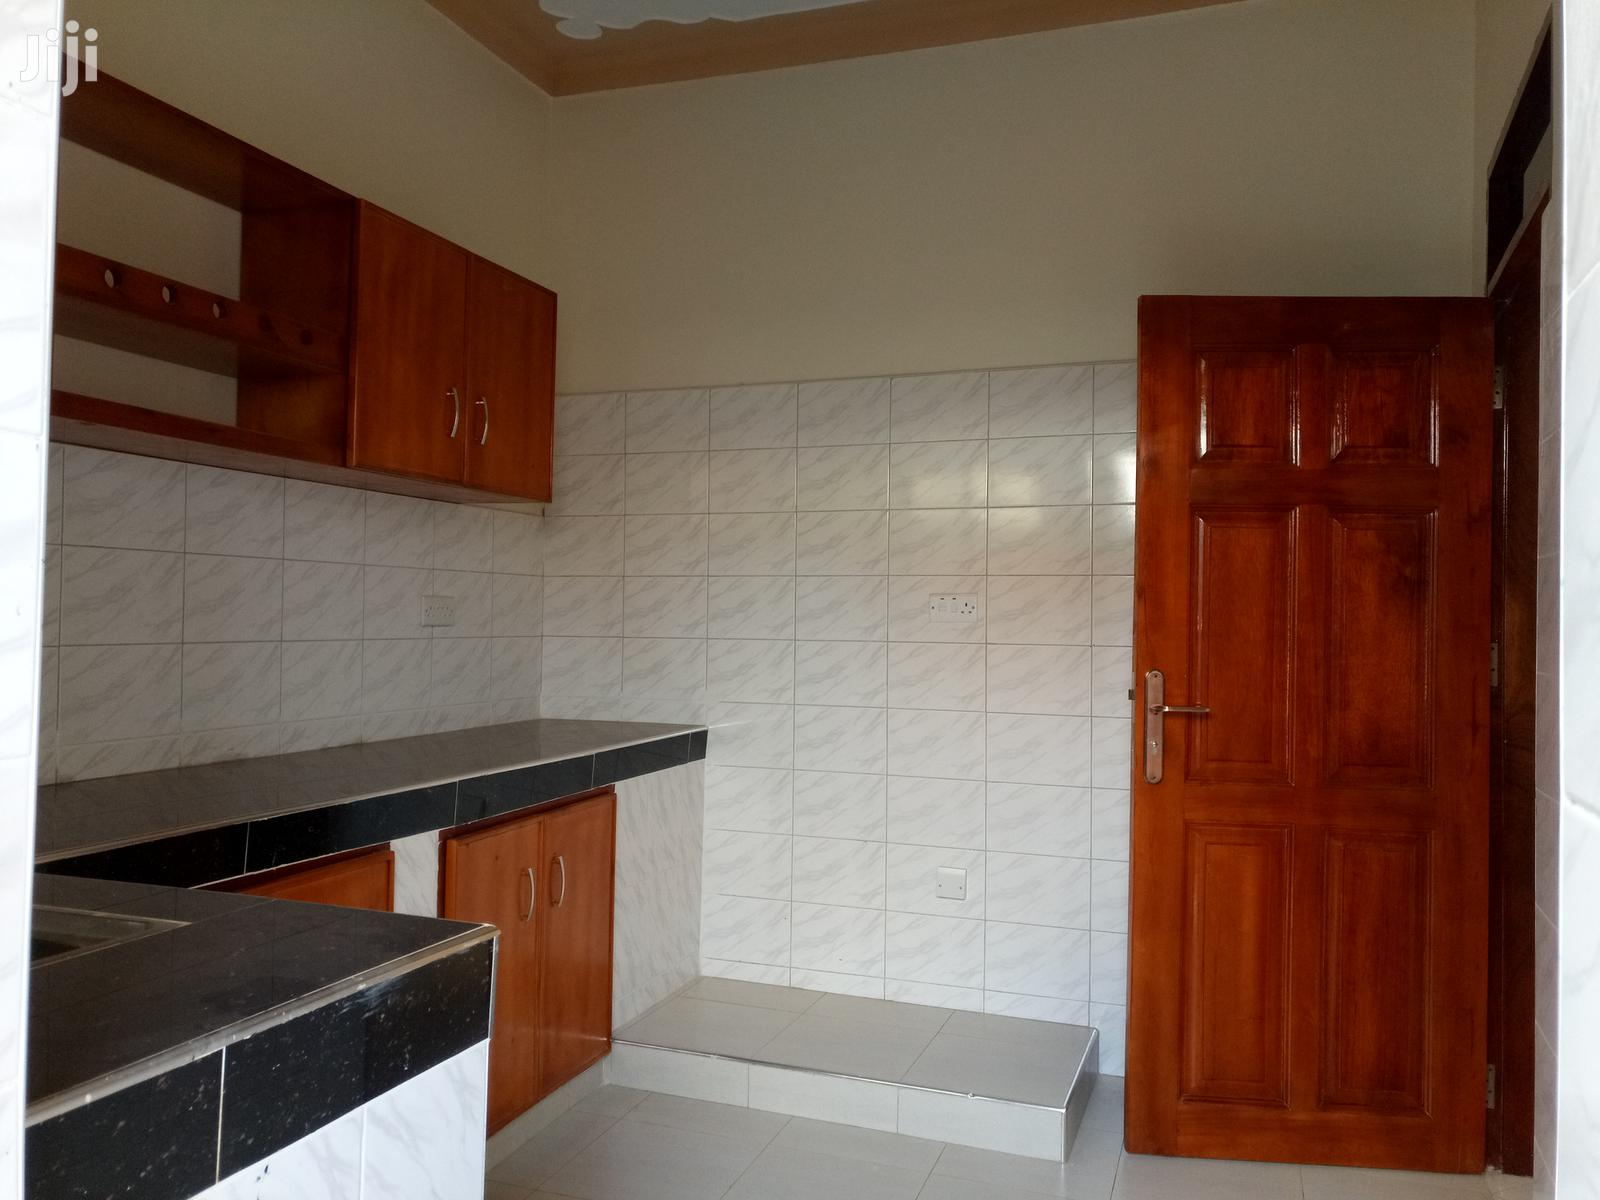 New Two Bedroom Two Toilet House In Kyaliwajjala For Rent | Houses & Apartments For Rent for sale in Kampala, Central Region, Uganda